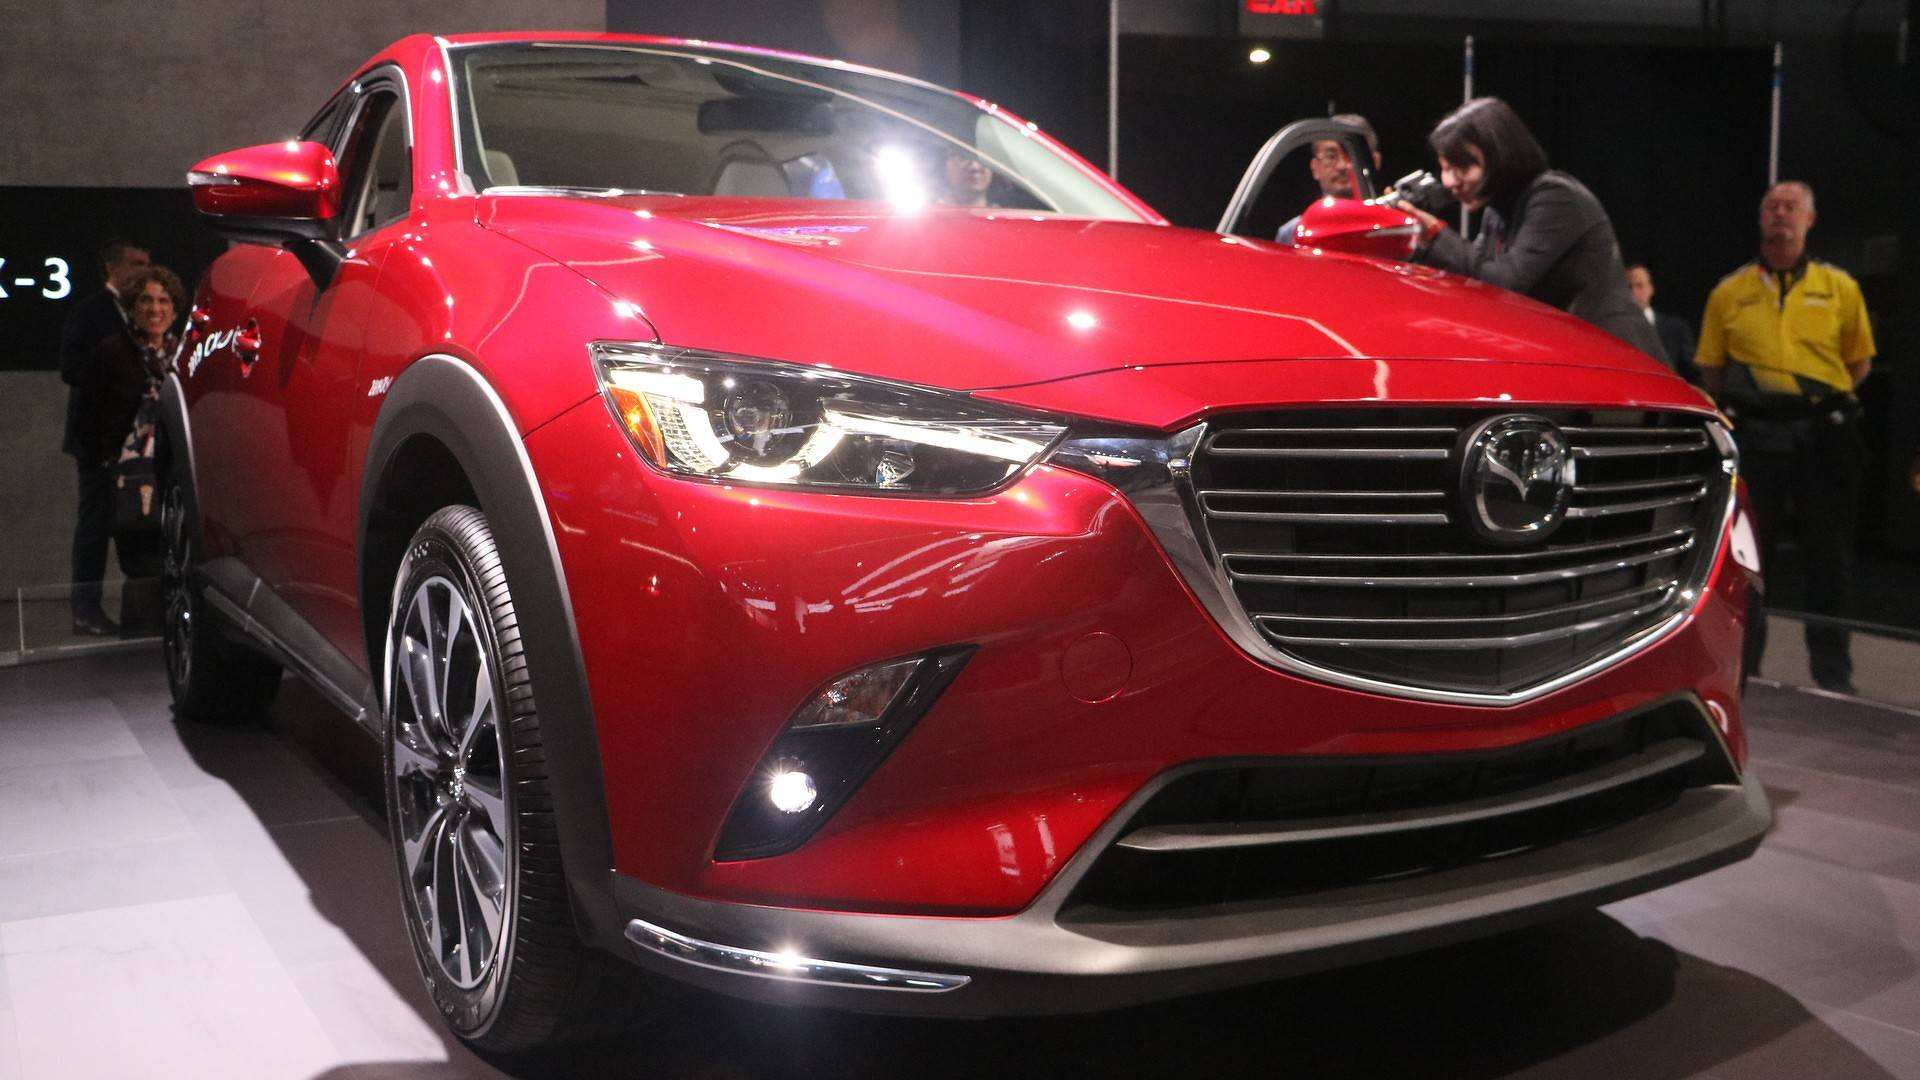 56 All New Mazda Cx 3 2020 Uk Pricing